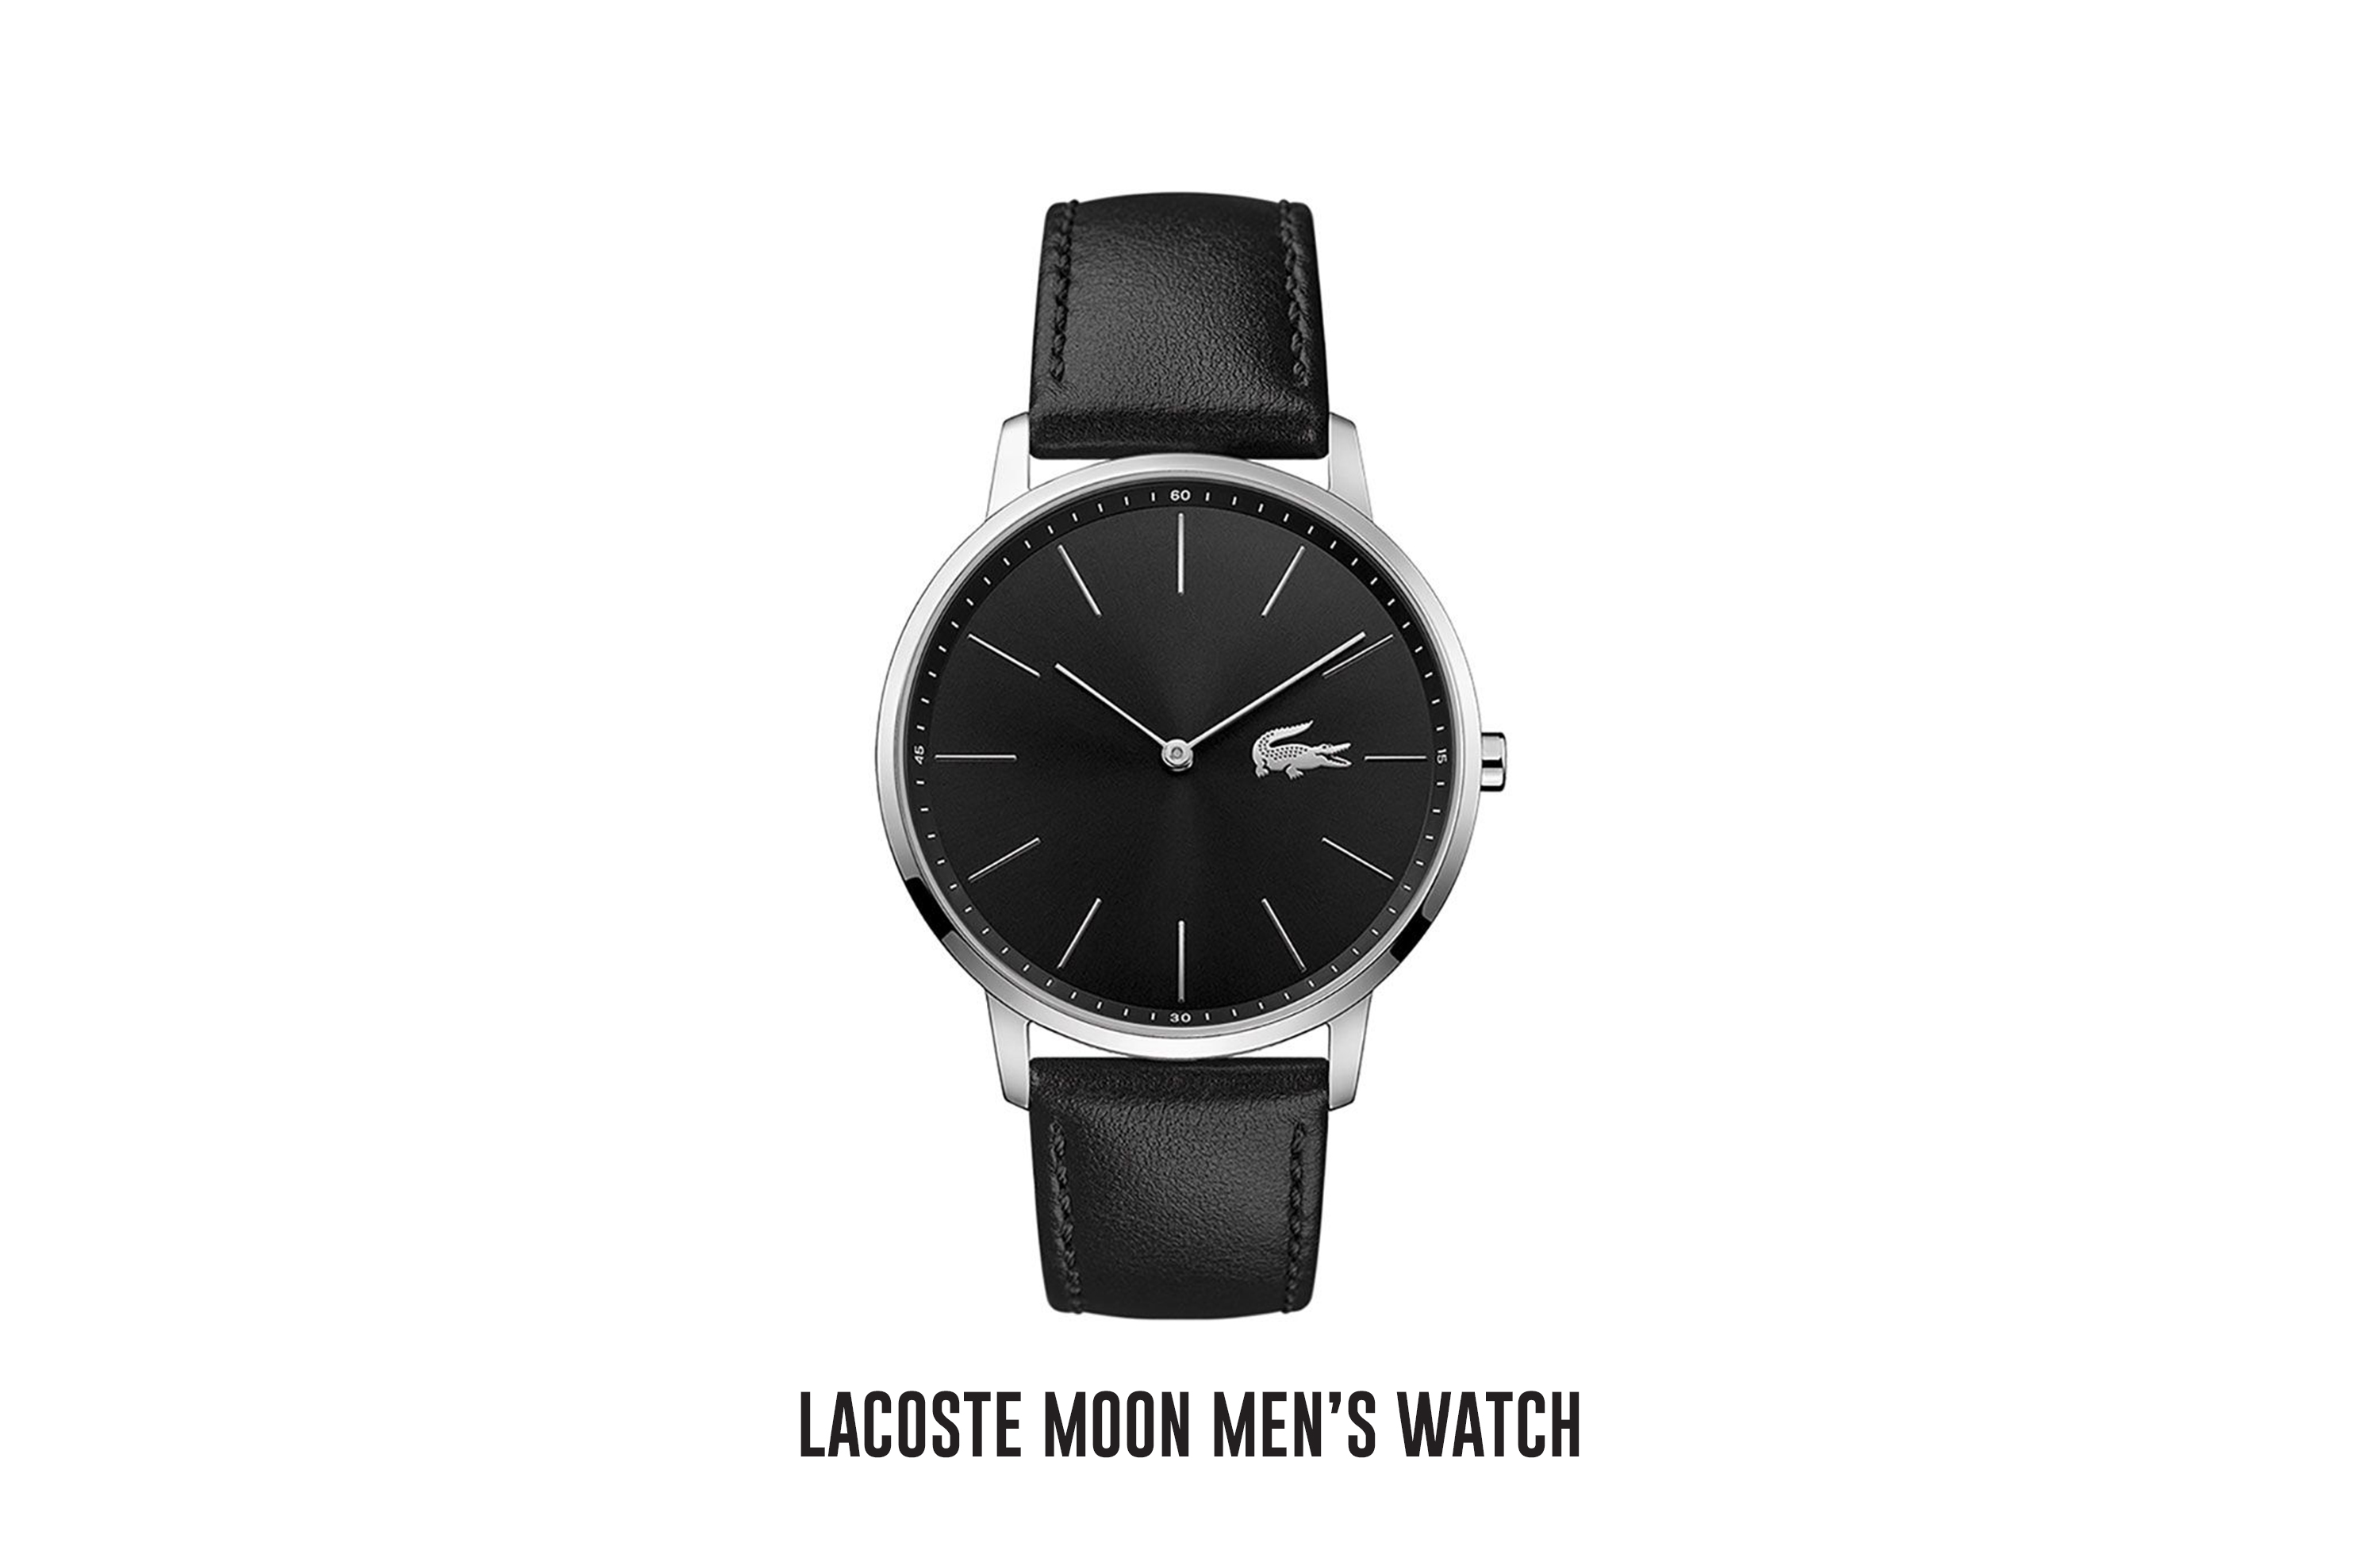 Lacoste Moon men's watch